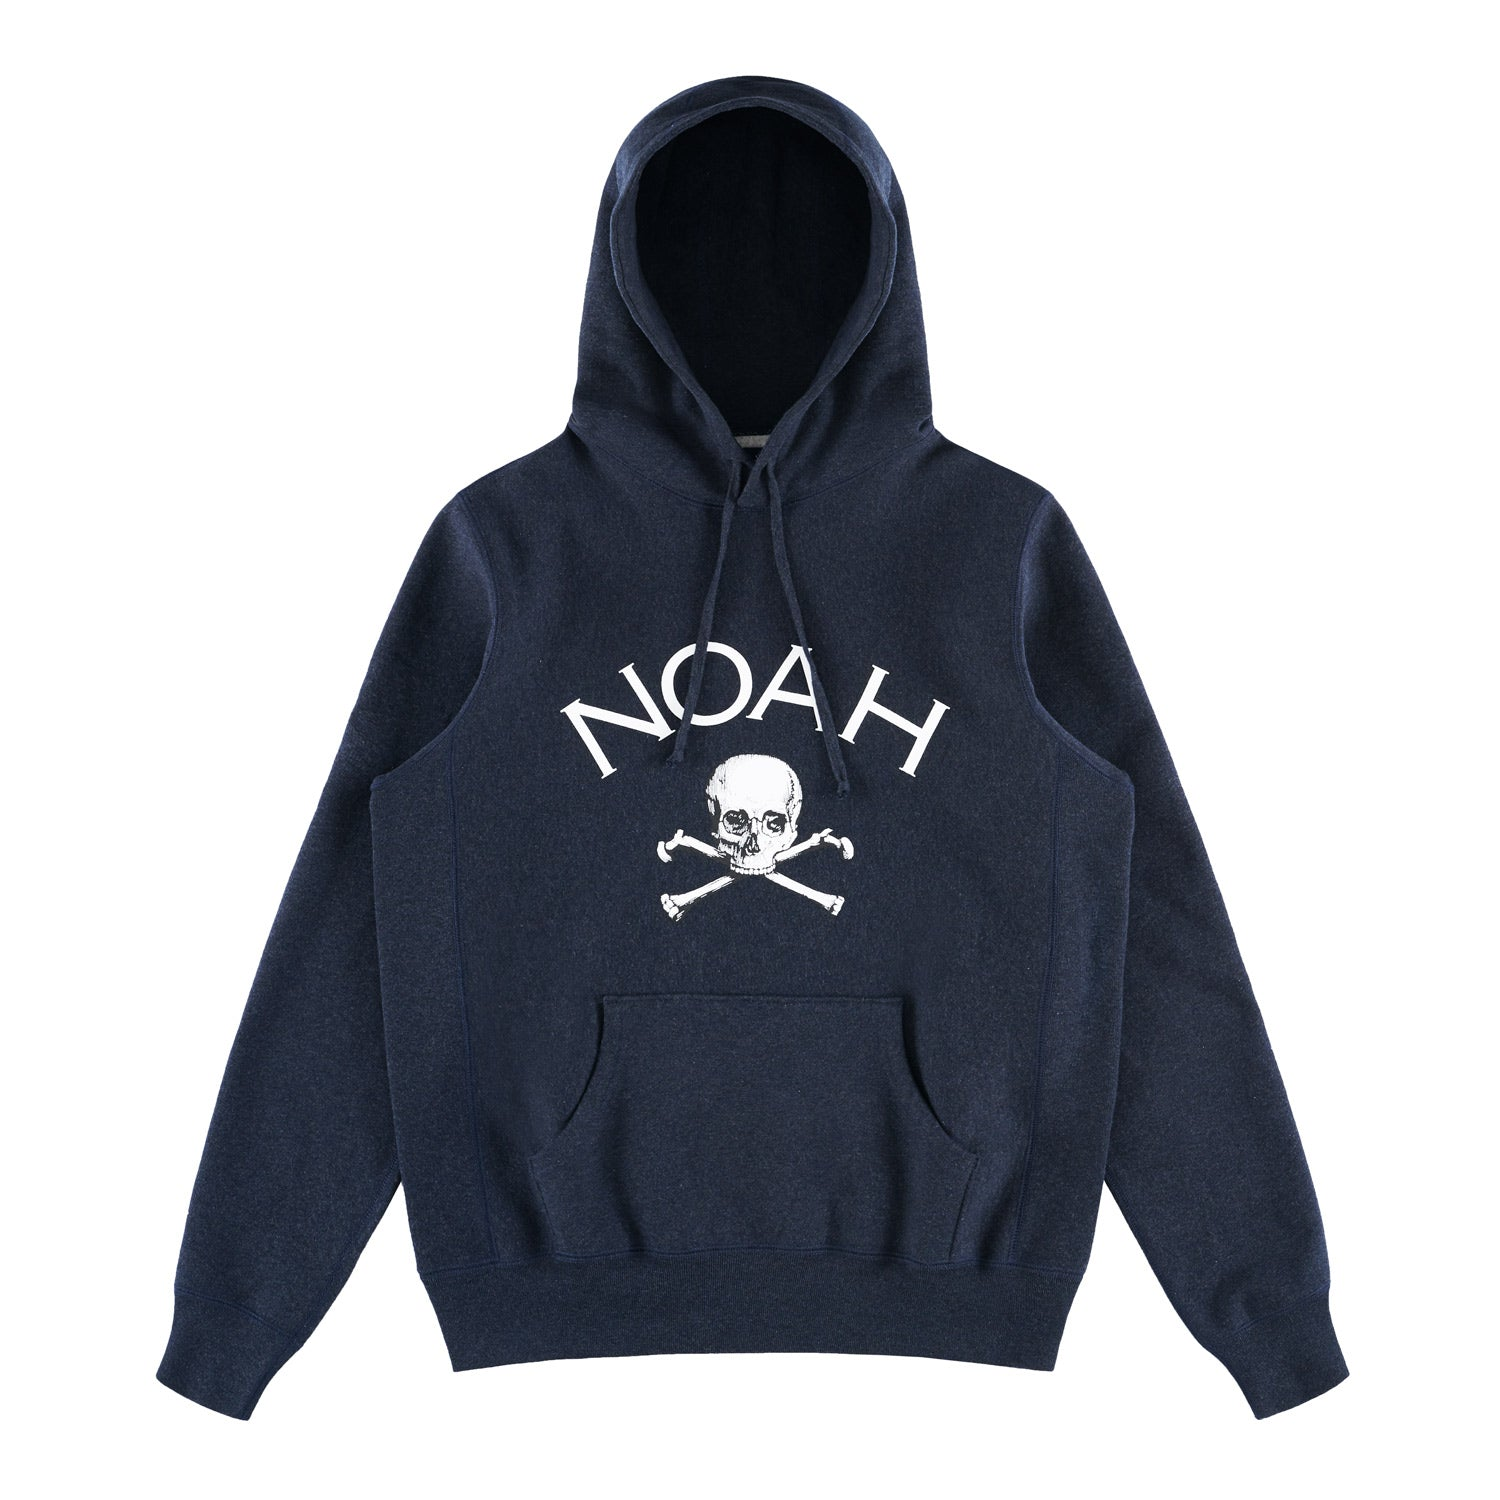 color: navy heather